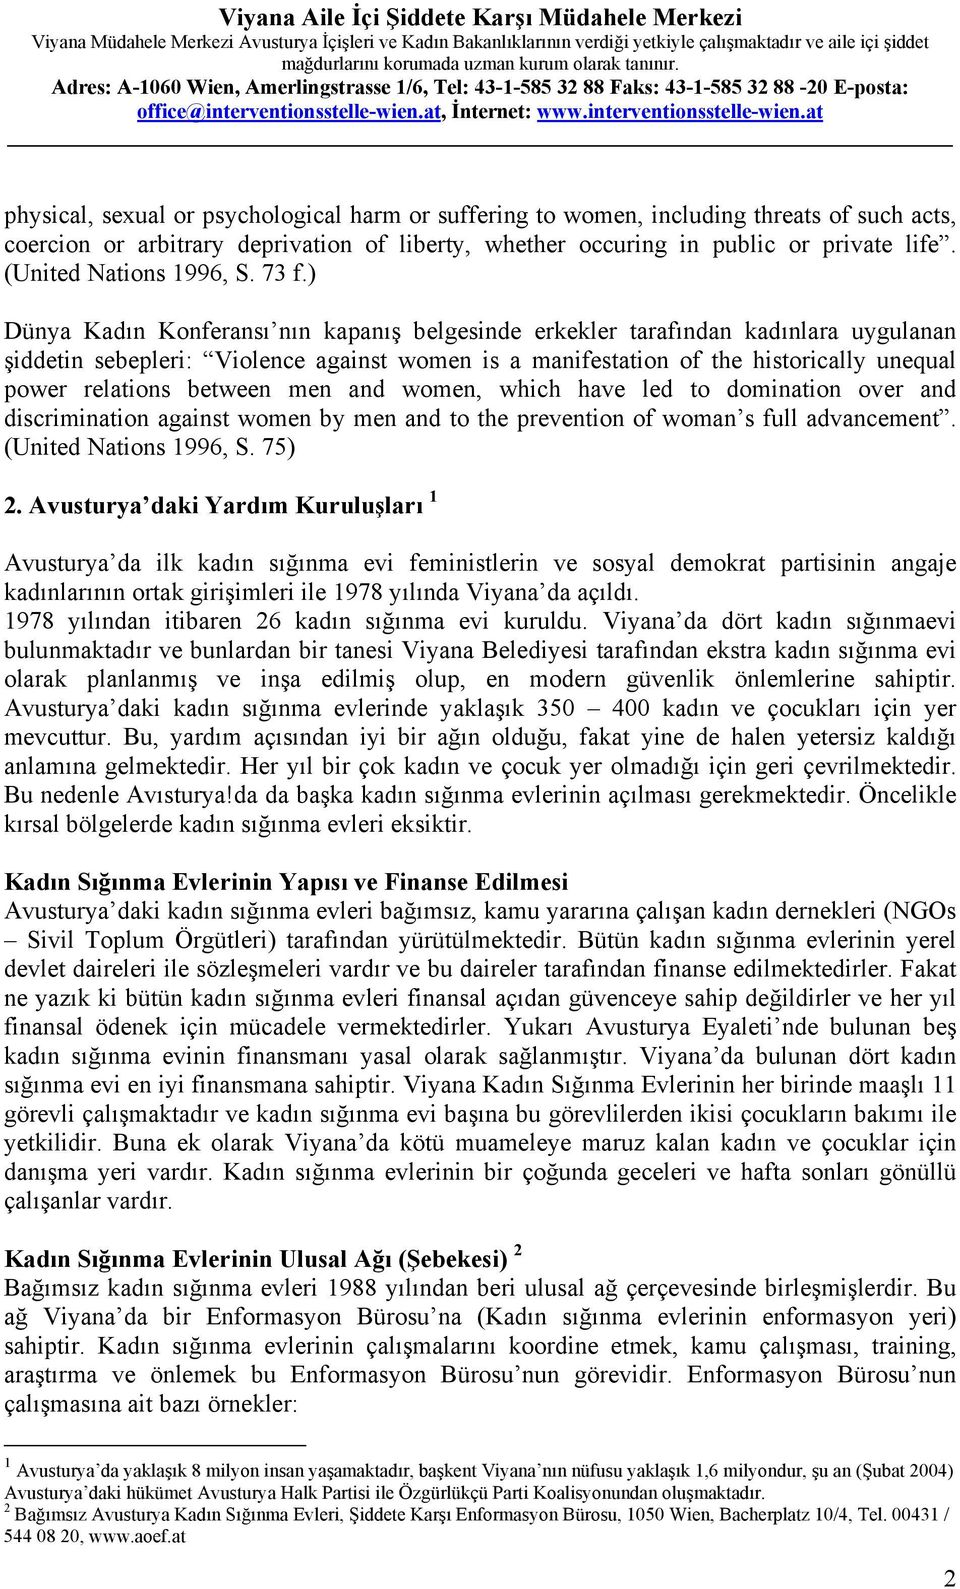 ) Dünya Kadın Konferansı nın kapanış belgesinde erkekler tarafından kadınlara uygulanan şiddetin sebepleri: Violence against women is a manifestation of the historically unequal power relations